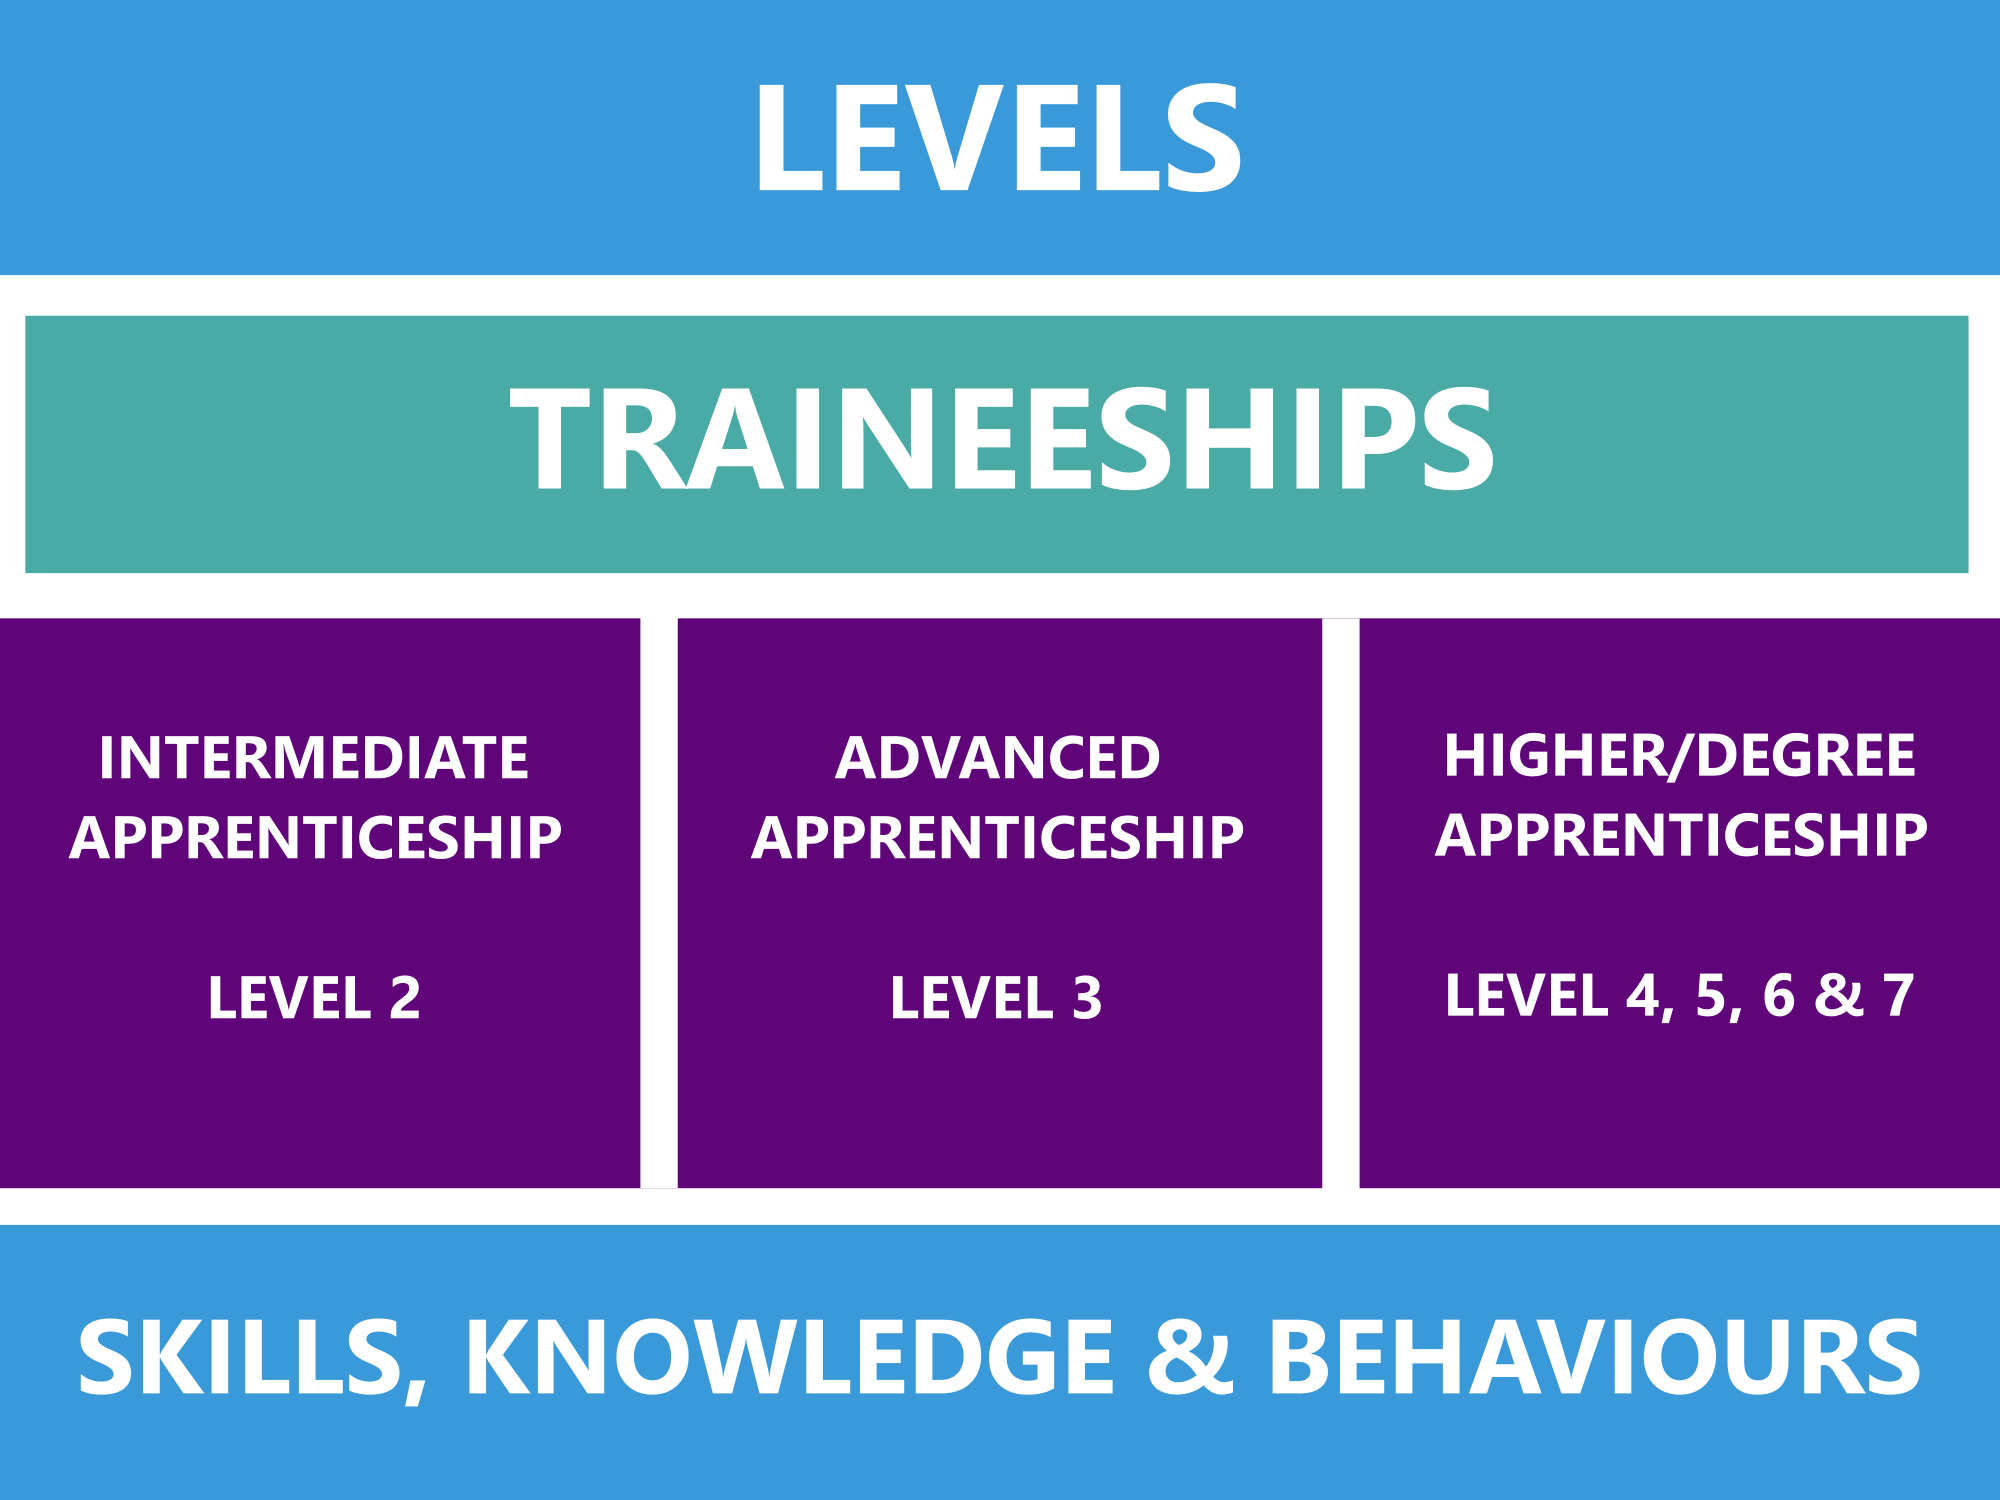 Levels of apprenticeship2